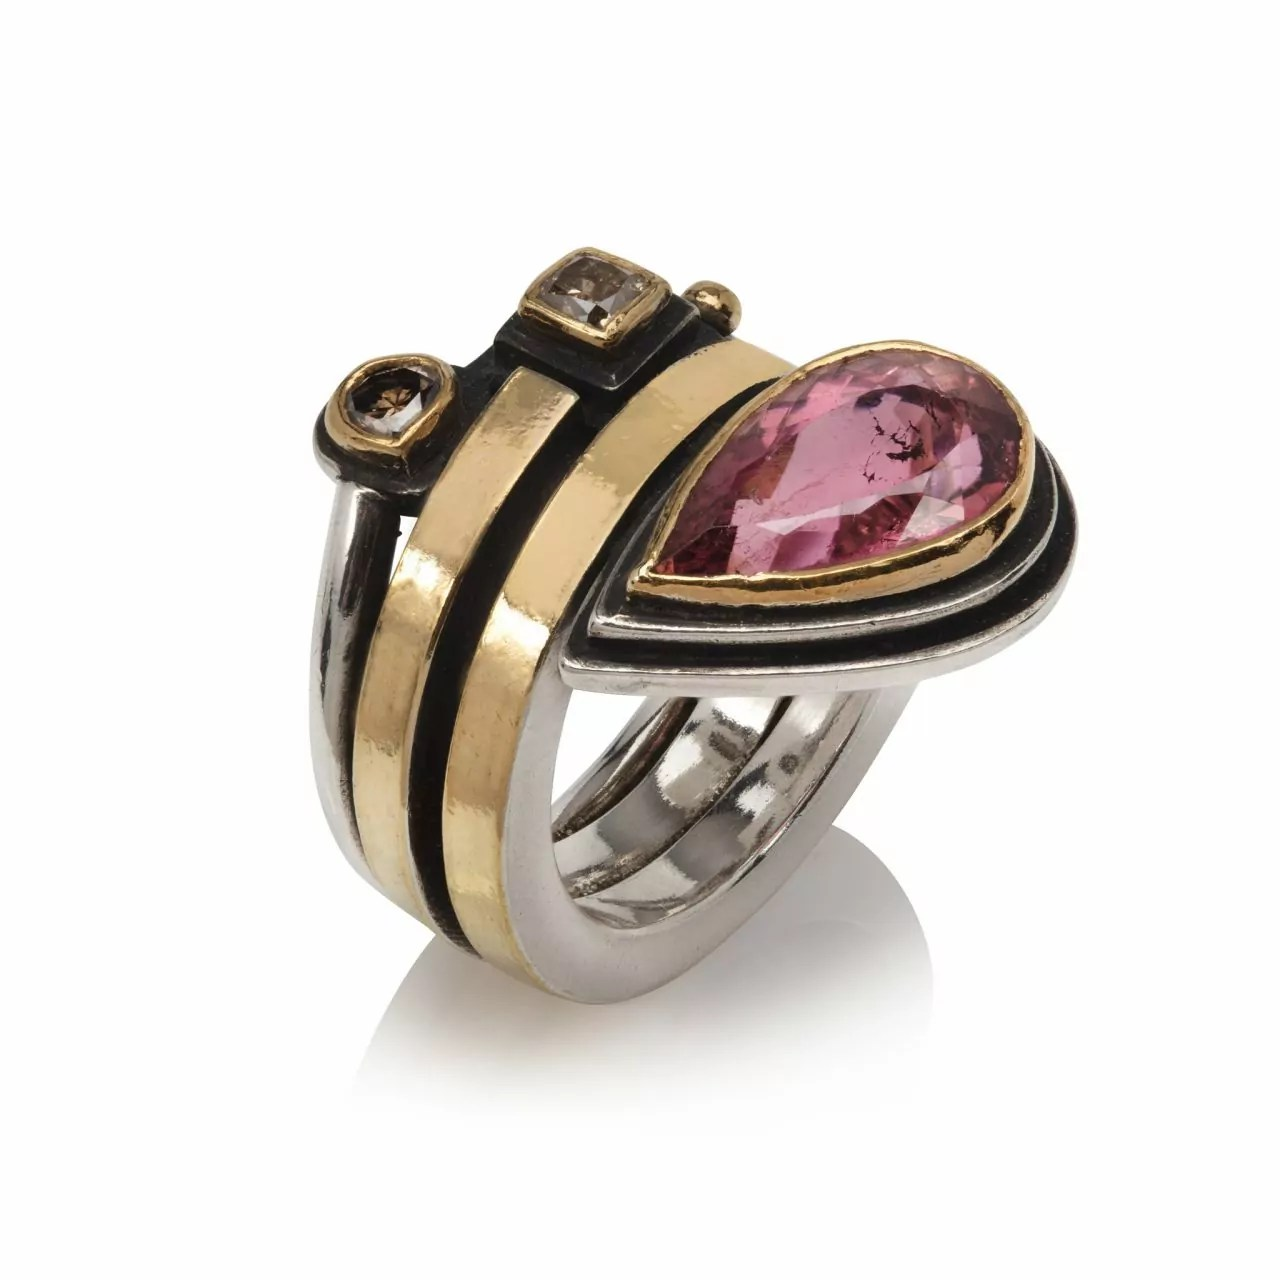 Ring with Pink Tourmaline and Brown Diamonds